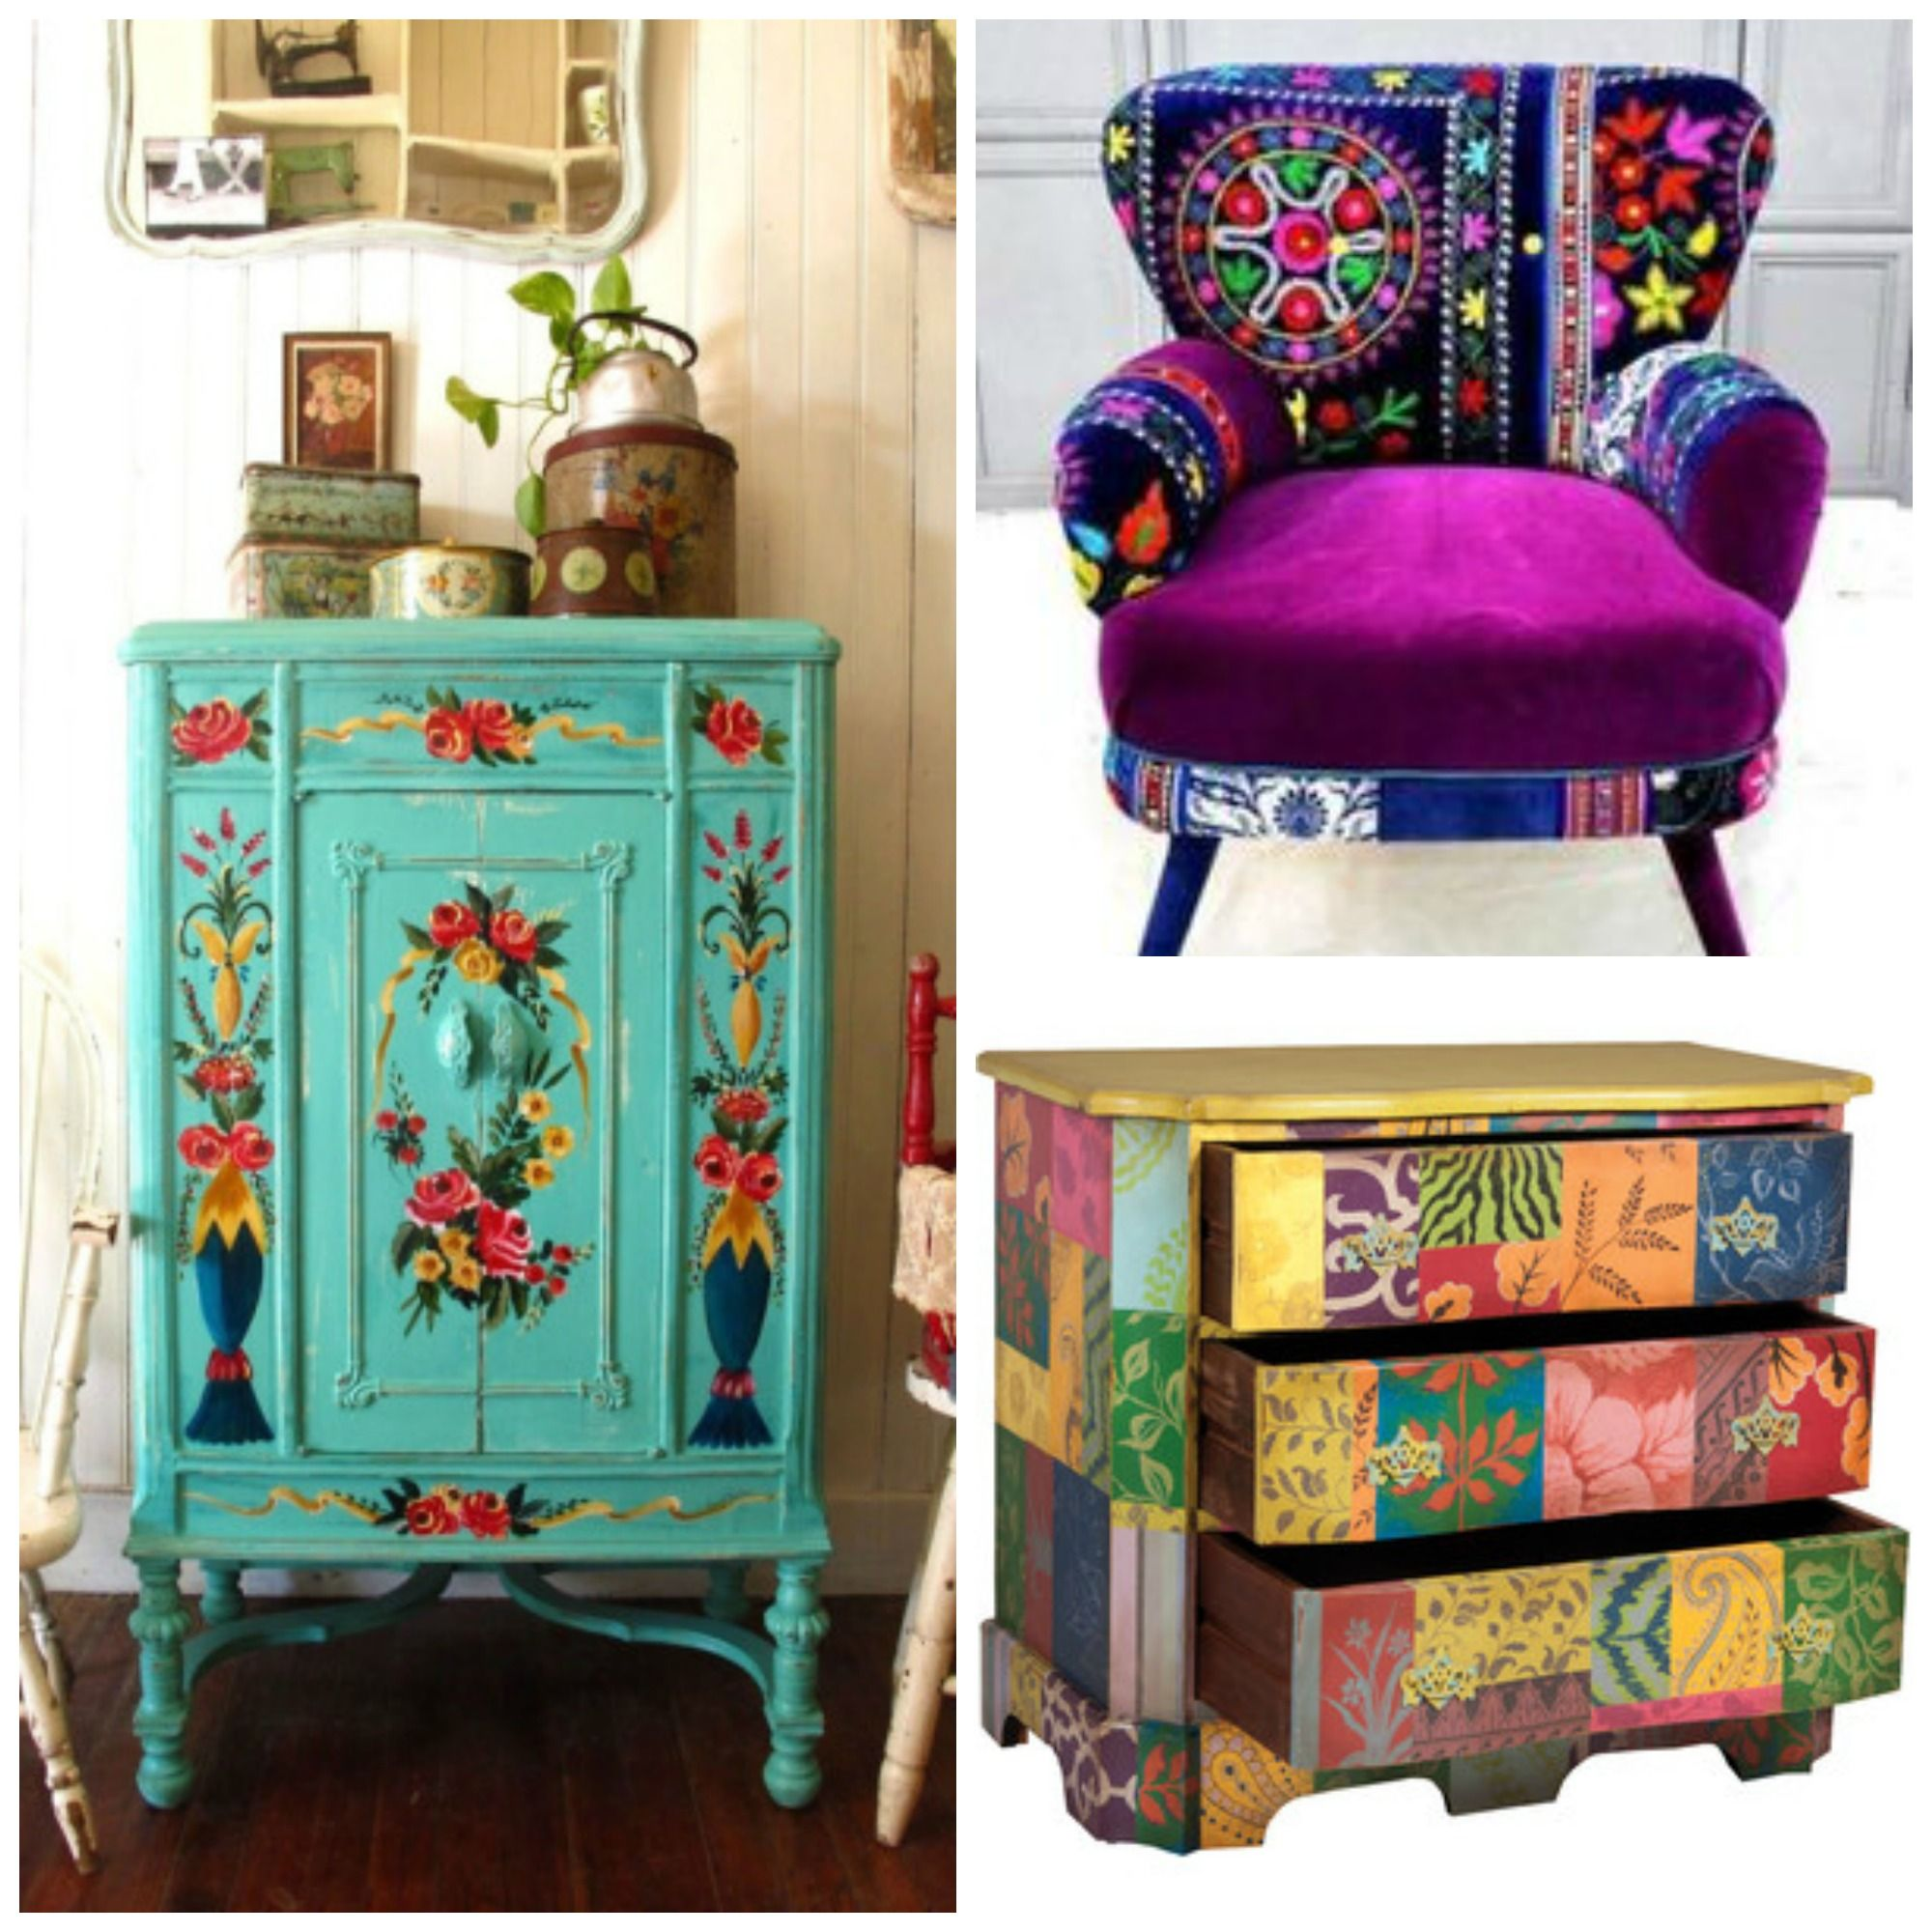 Hippie home decor bohemian interior bohemian decor style for Furniture accessories